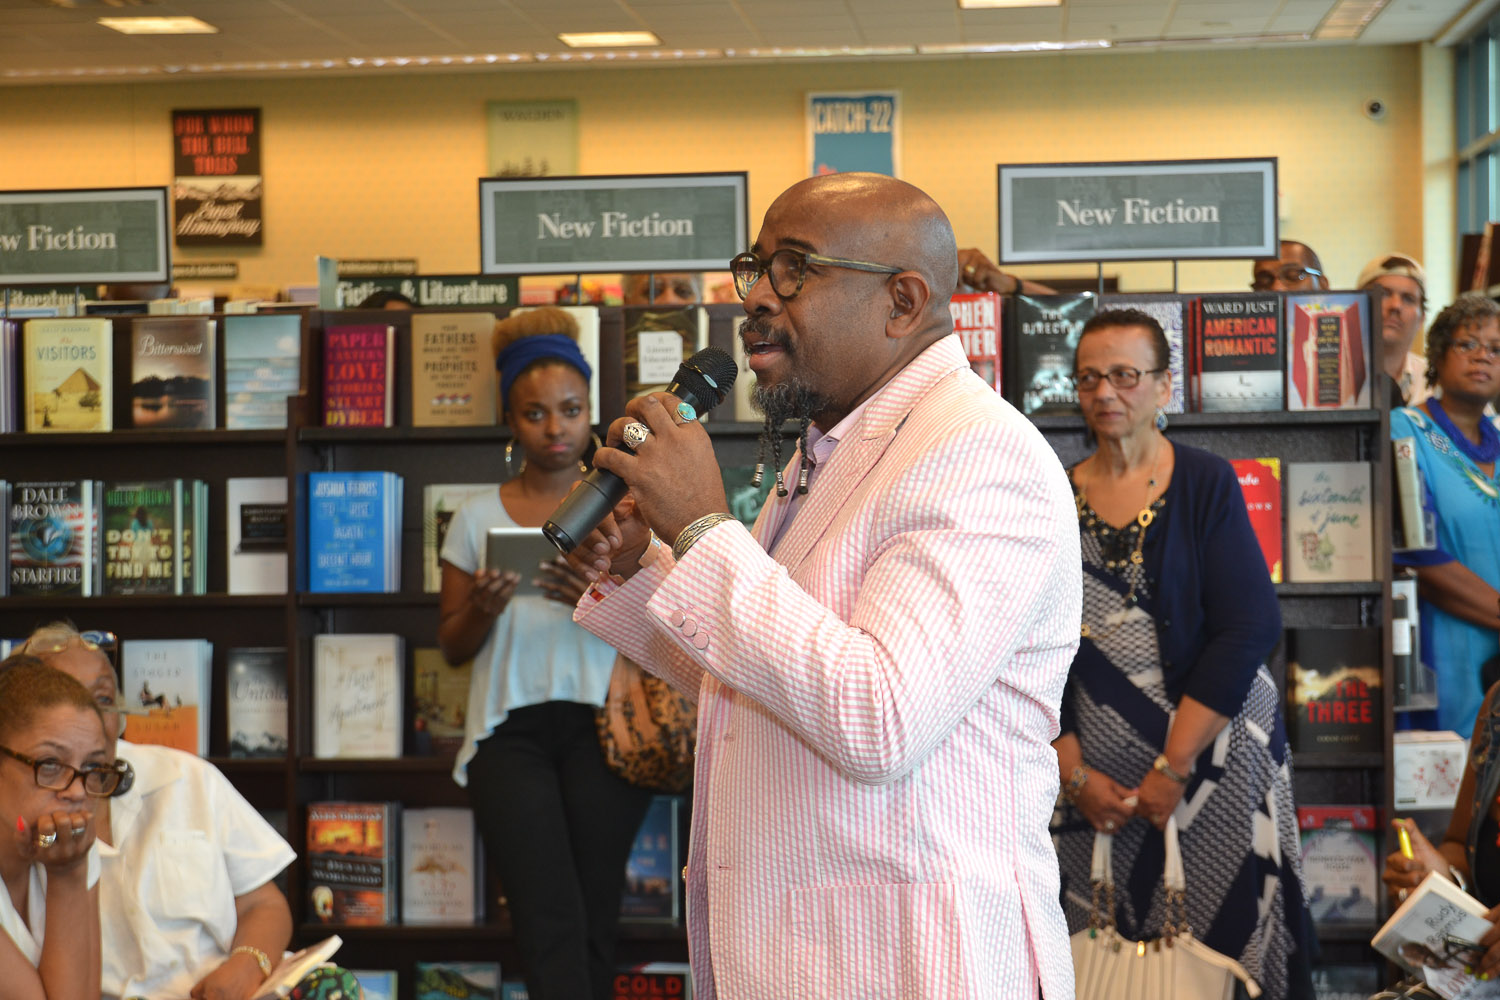 Paster Rudy book signing -0113.jpg